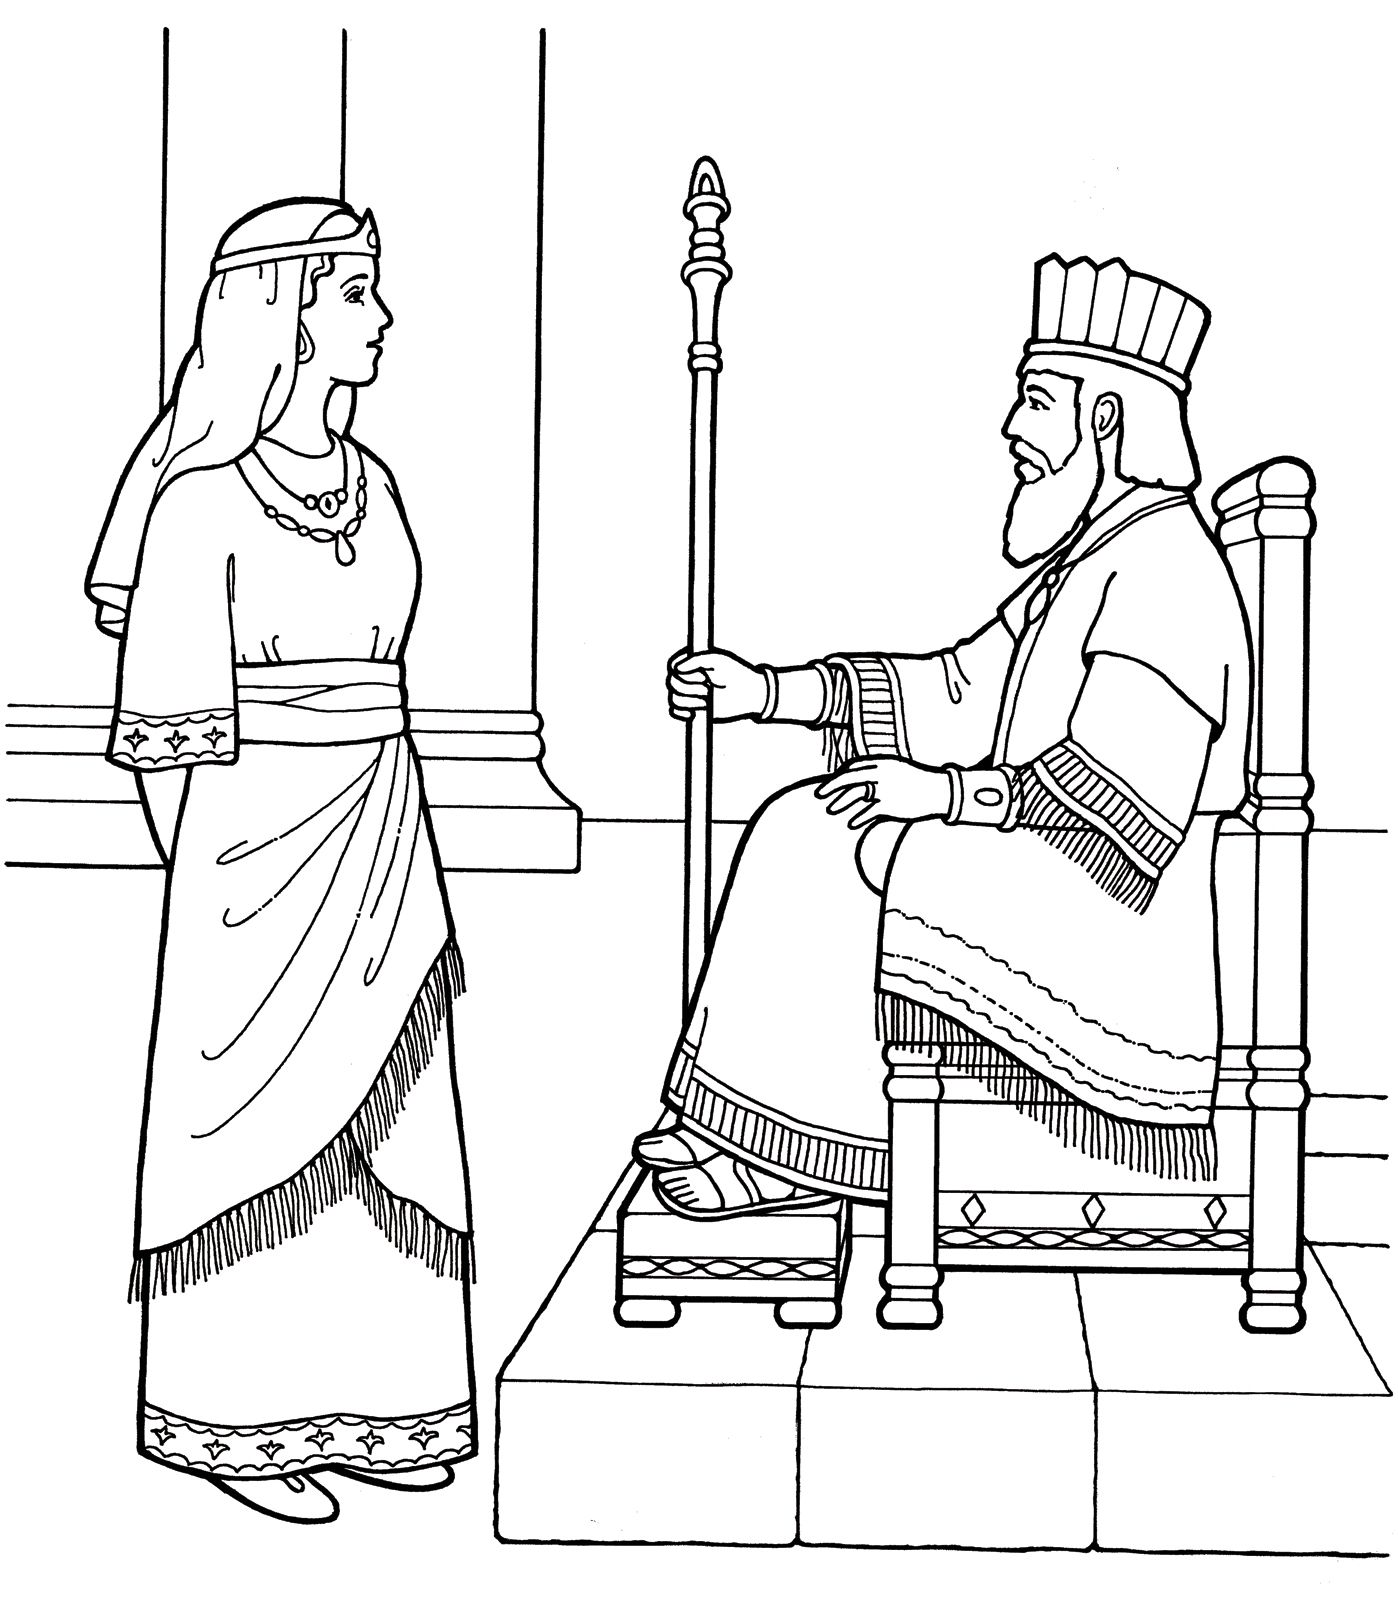 An Lds Primary Coloring Page From Lds Org Queen Esther With The